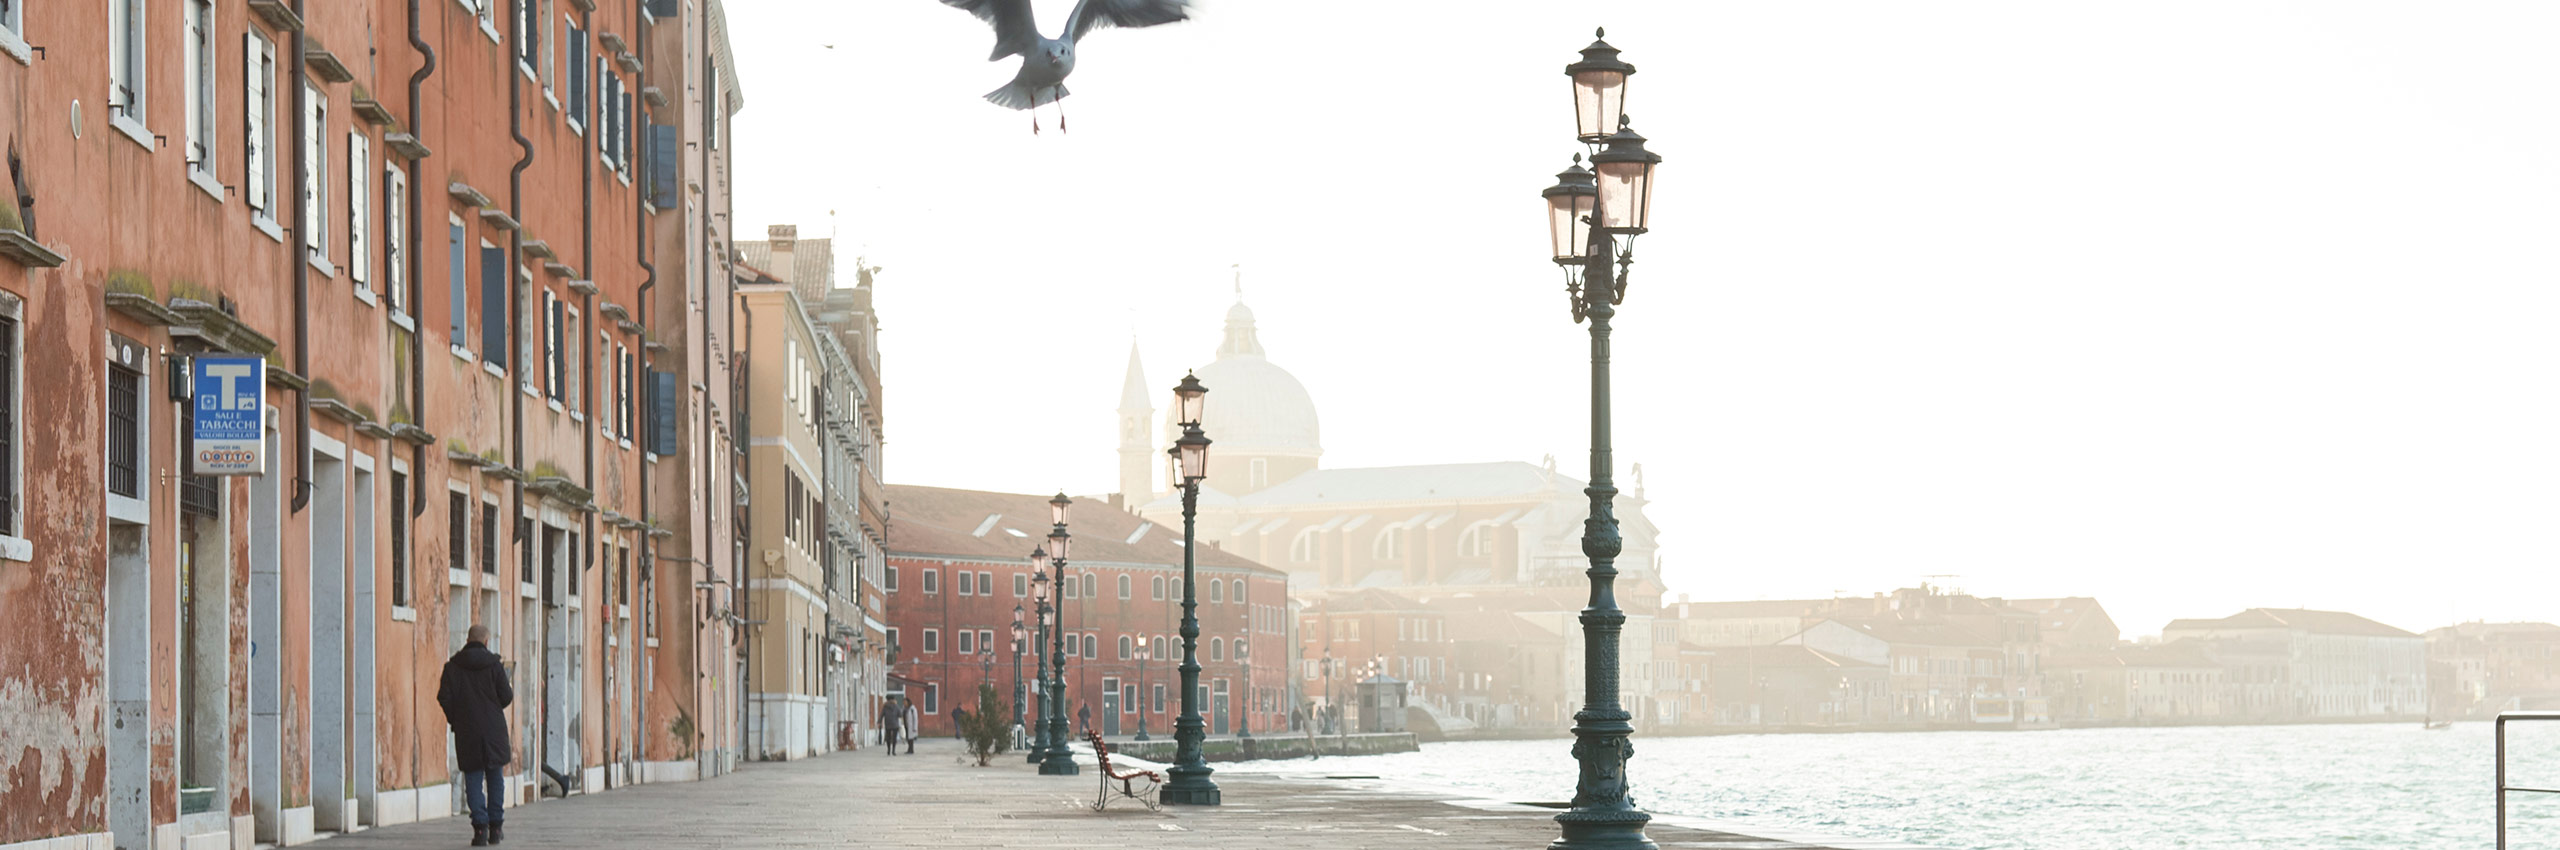 SIM-1037703 | Italy/Veneto, Venezia district, Venice, Giudecca | © Colin Dutton/4Corners